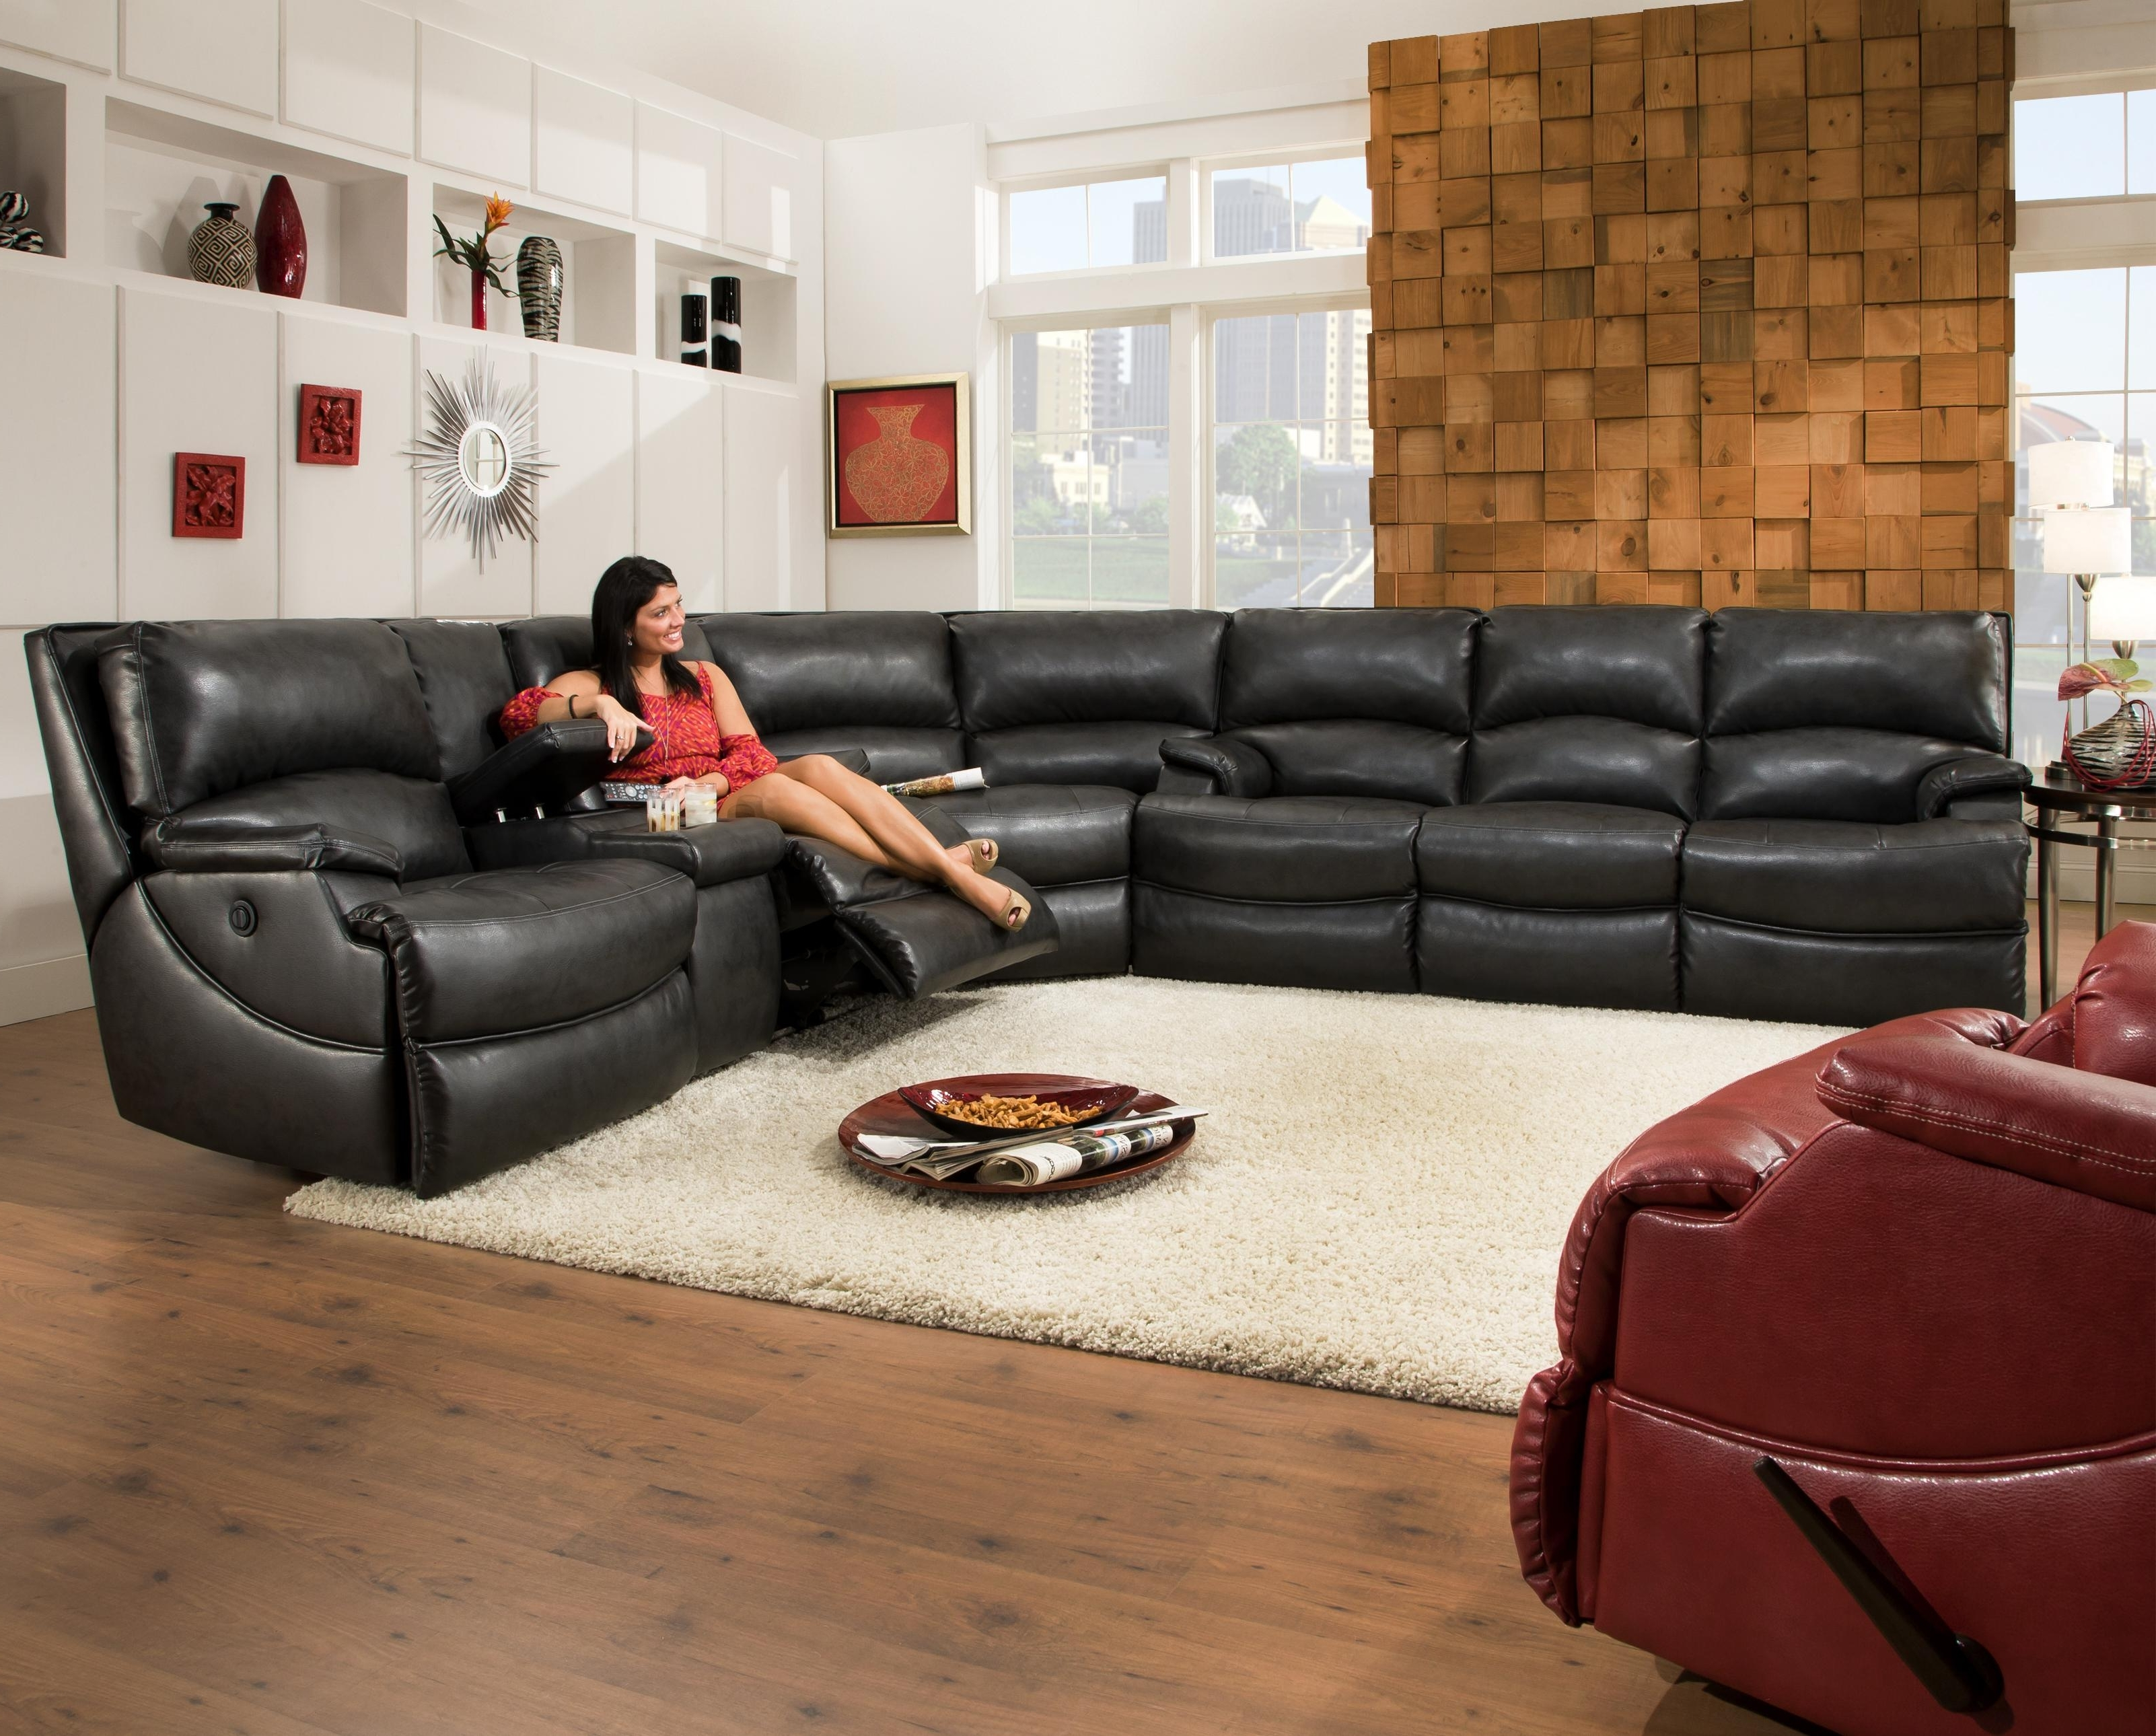 Preferred Sectional Sofas At Charlotte Nc For Amazing Black Sectional Sofa With Recliners 48 On Sleeper Sofa (View 12 of 15)